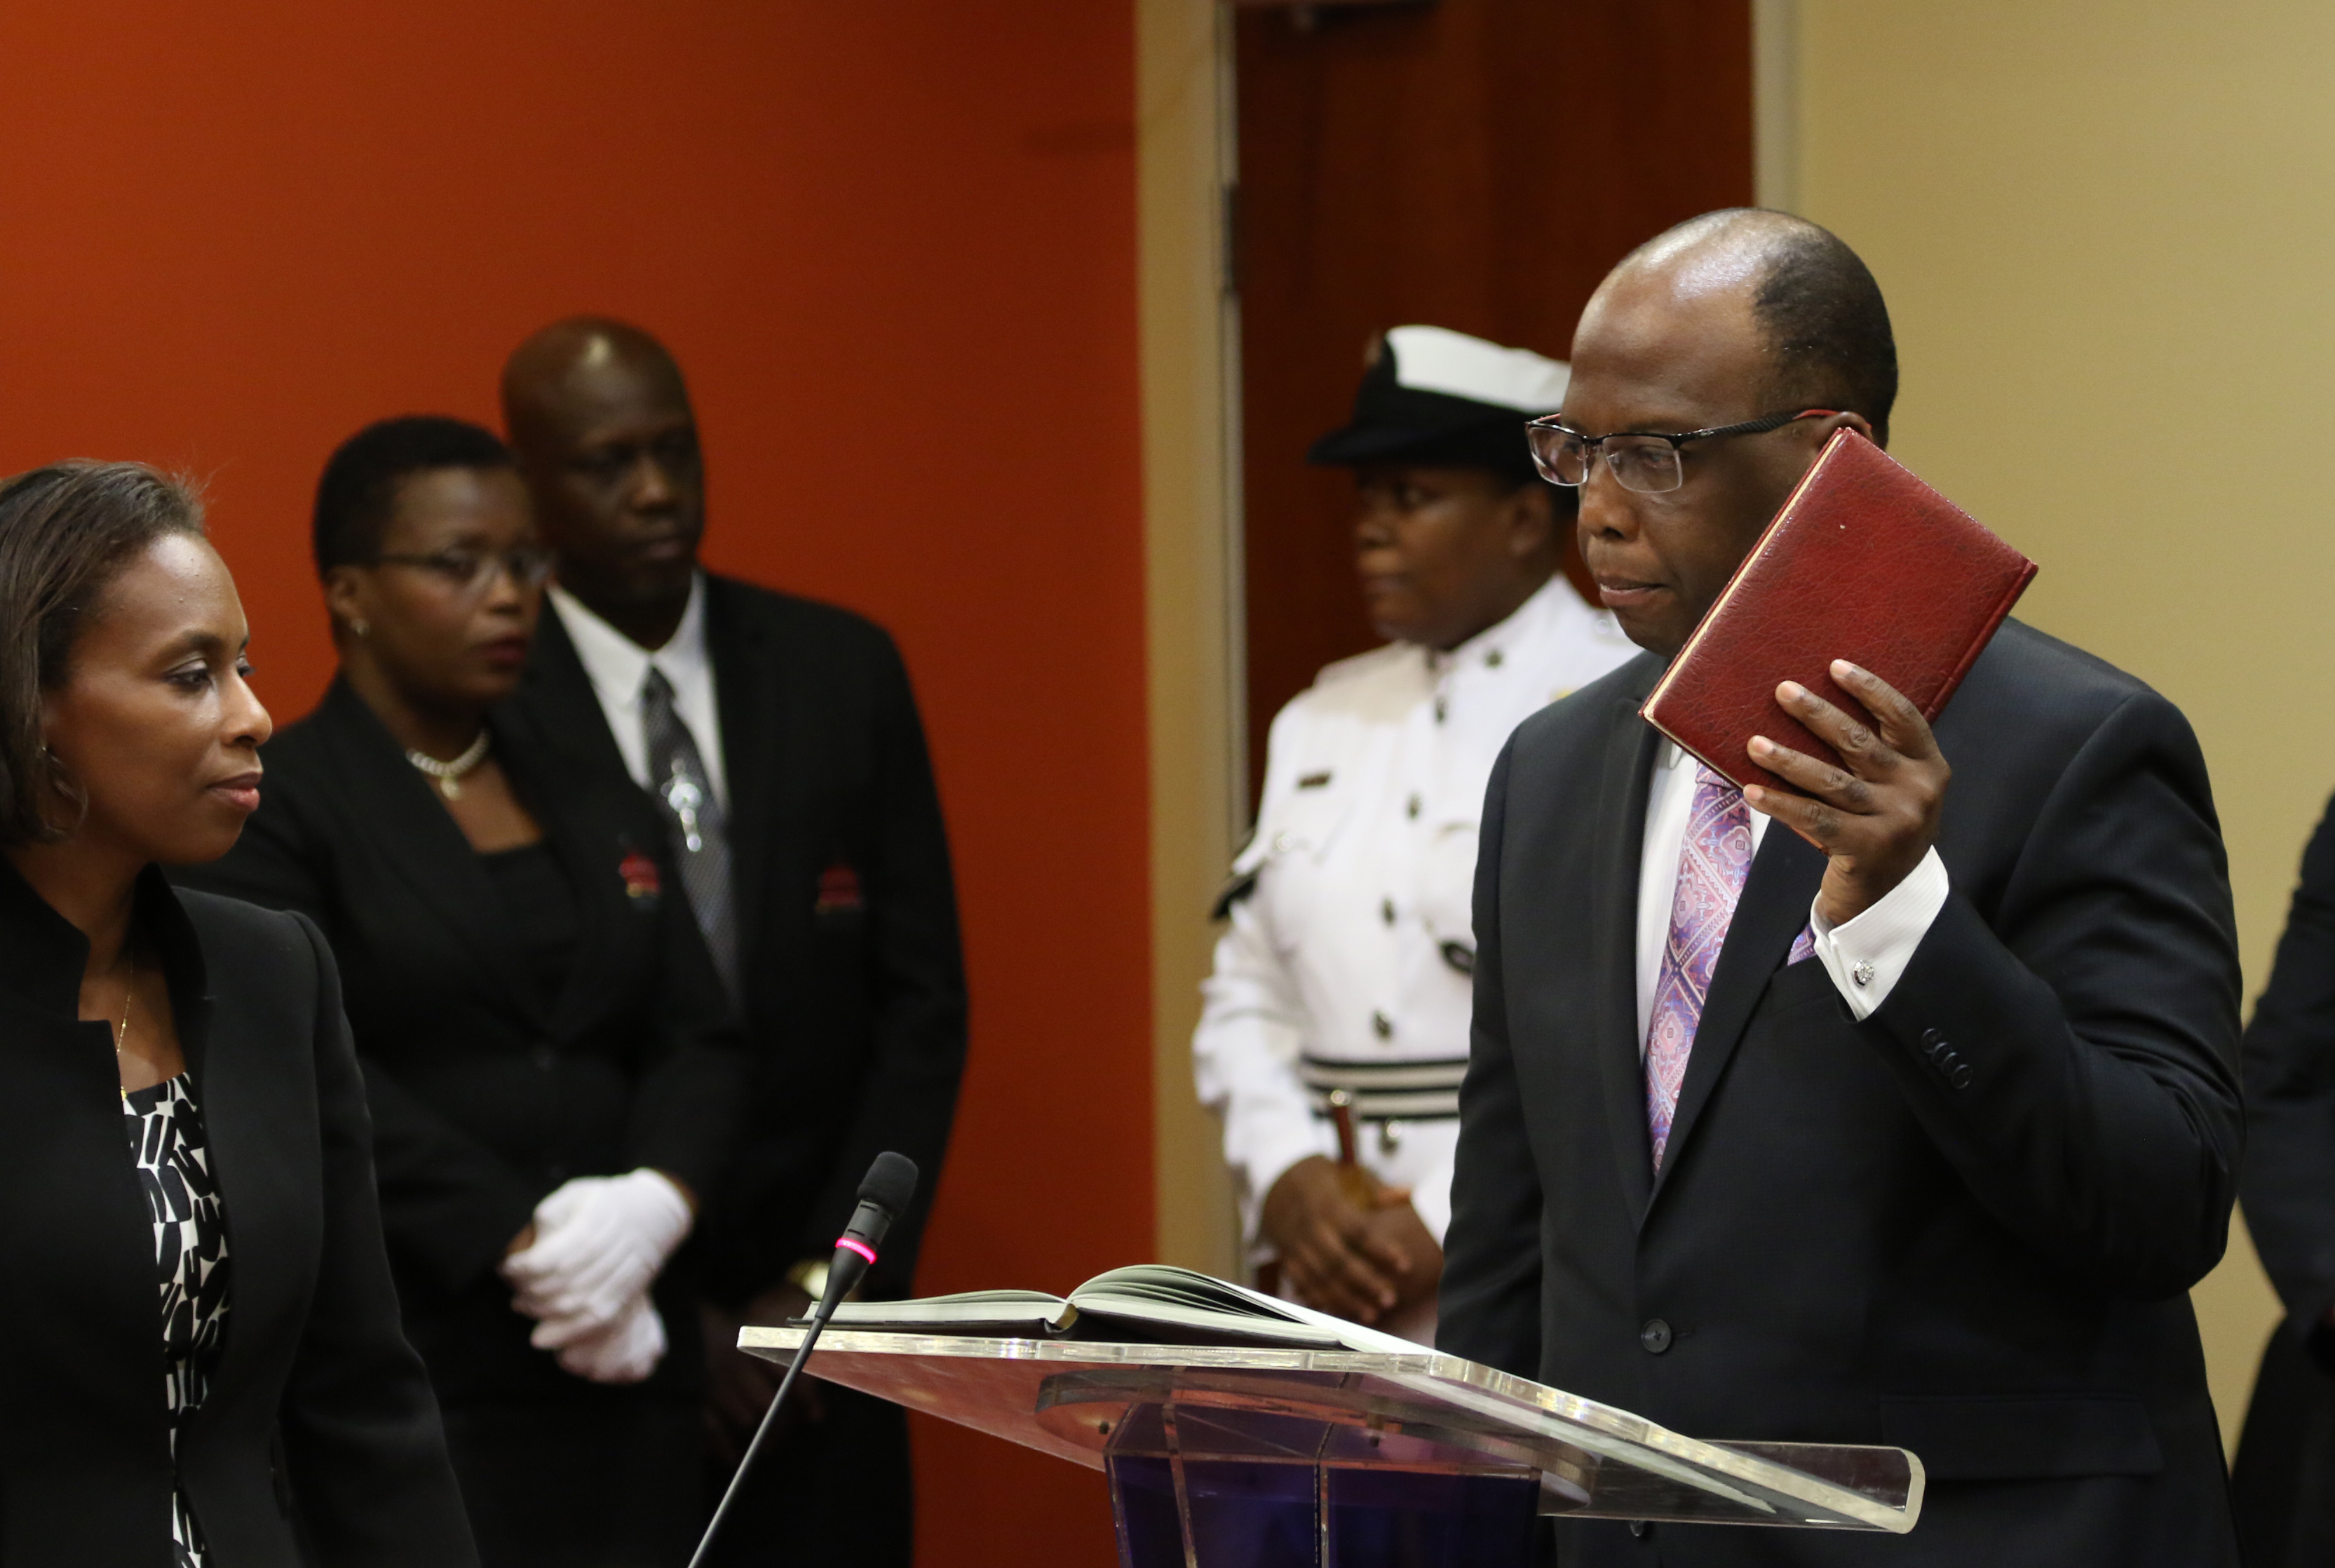 President of Trinidad and Tobago Reappoints David Small